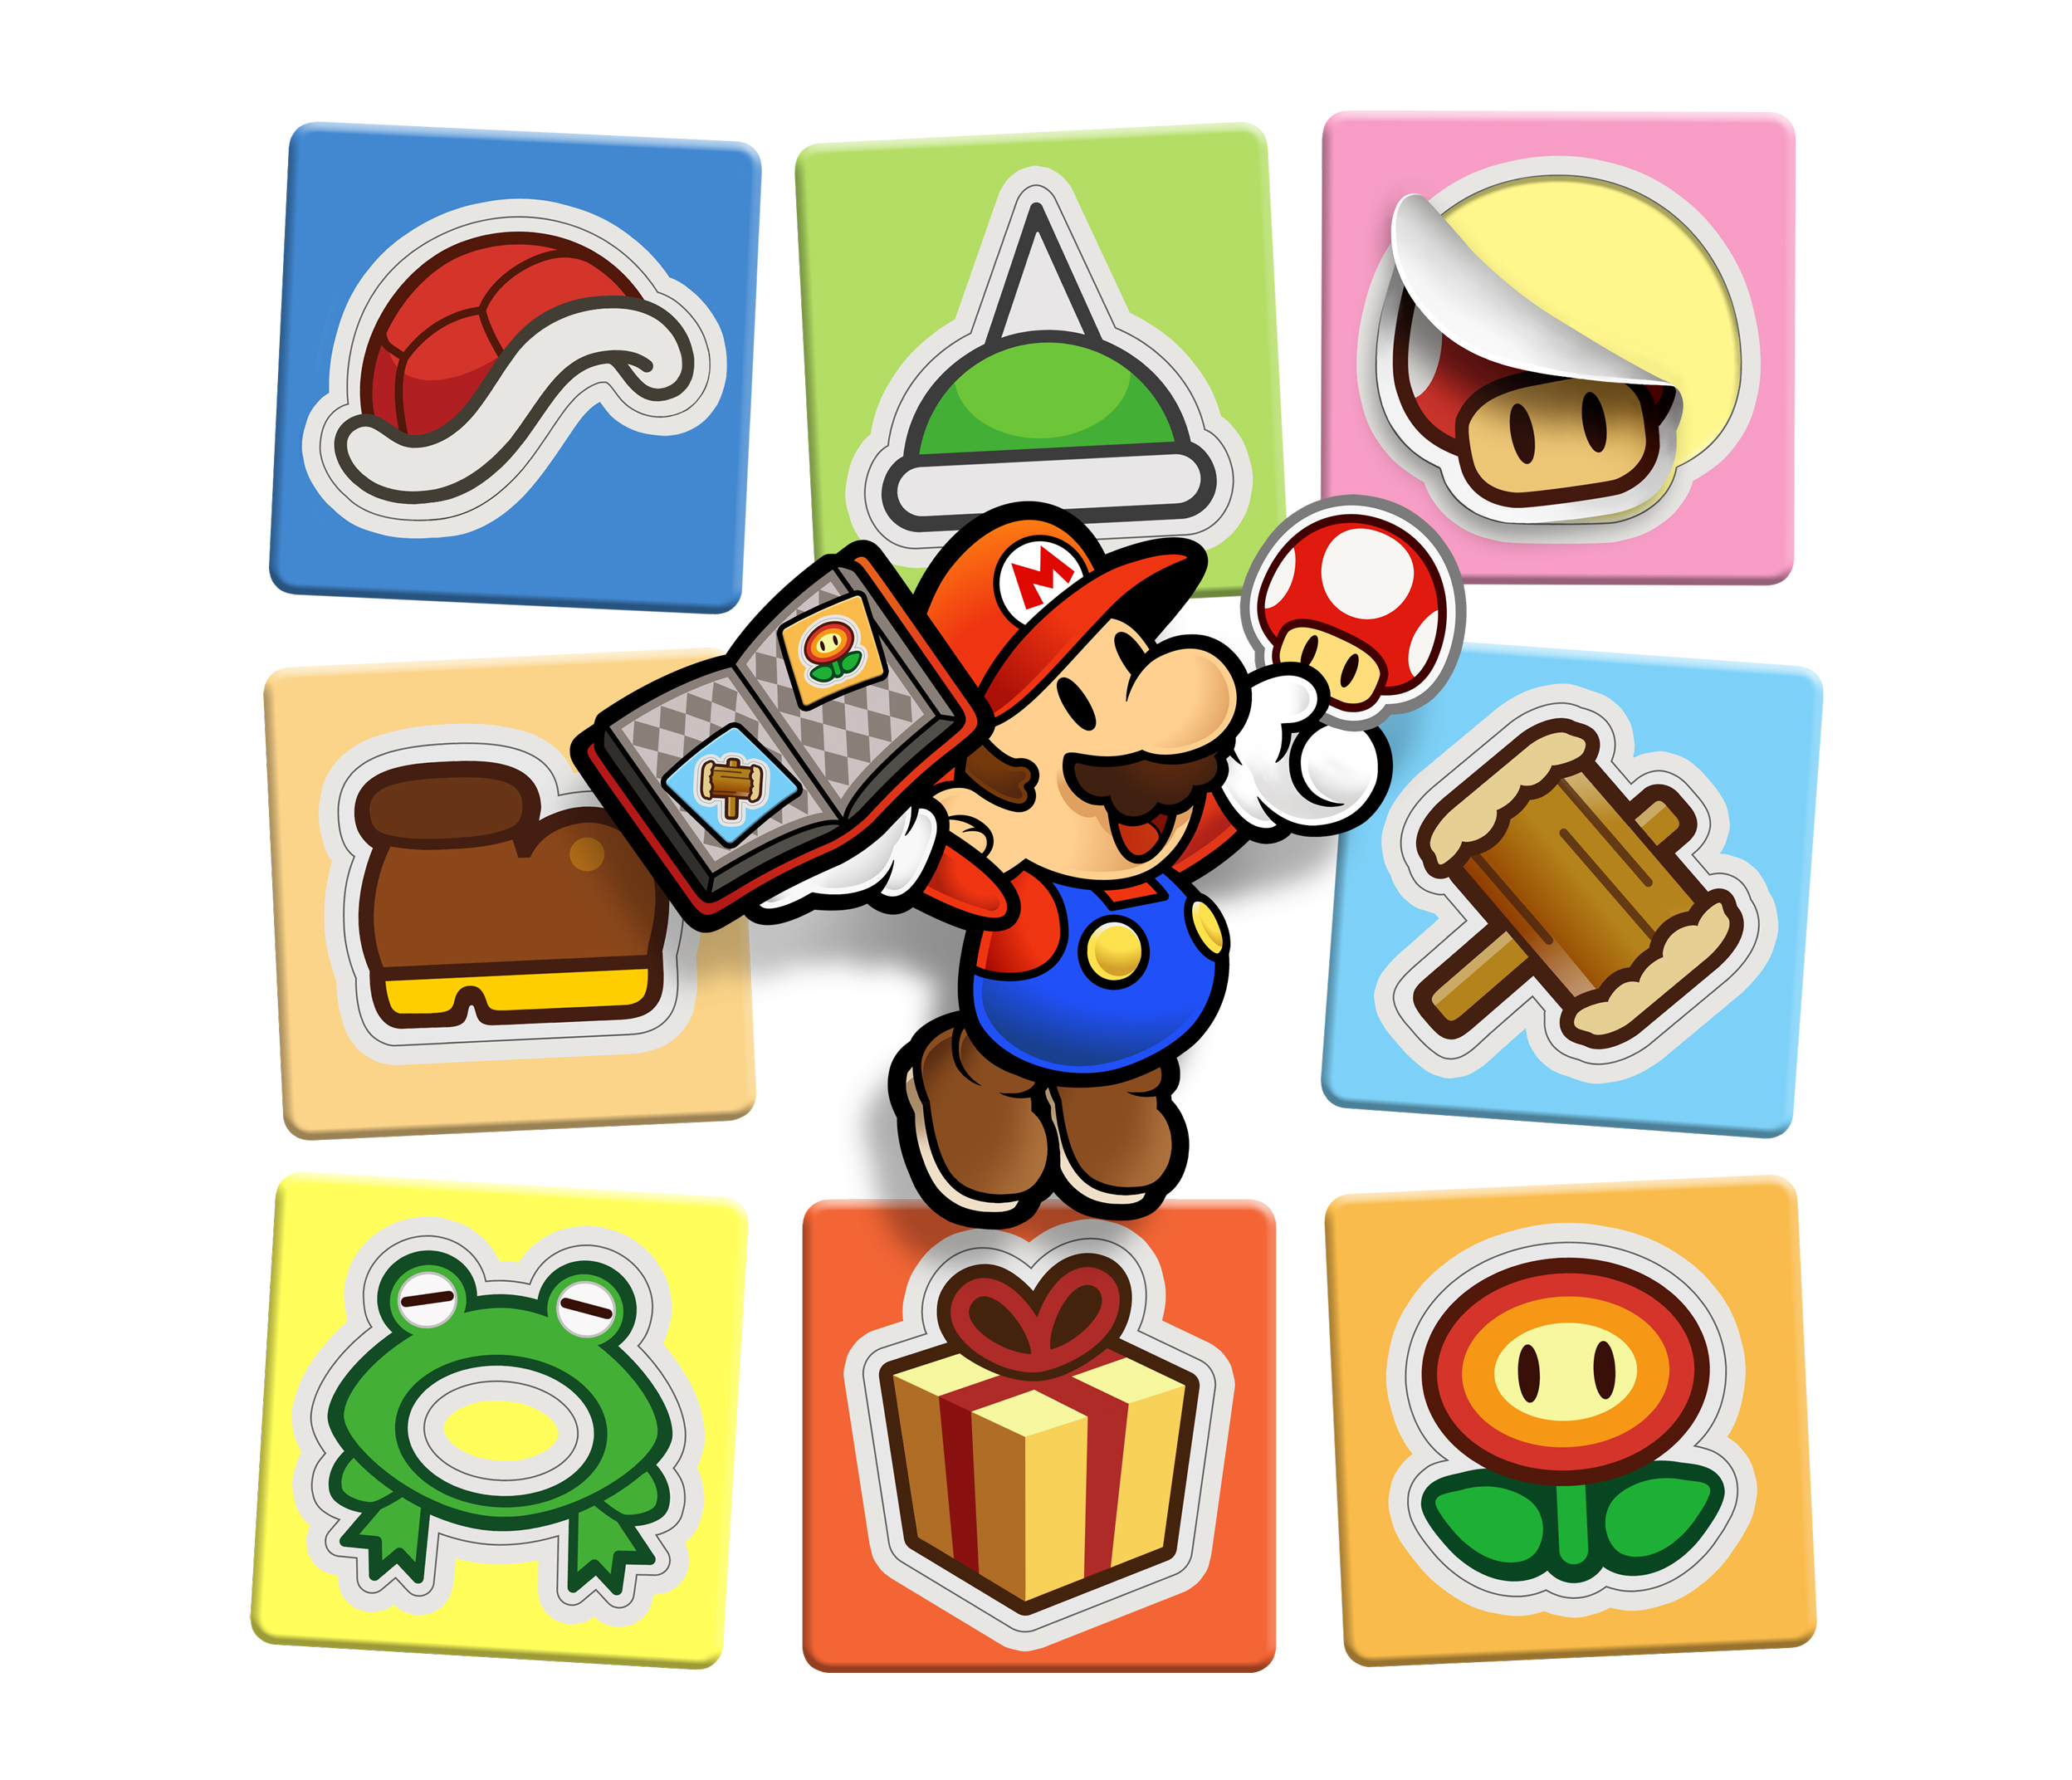 Download Paper Mario Sticker Star Wallpaper Gallery